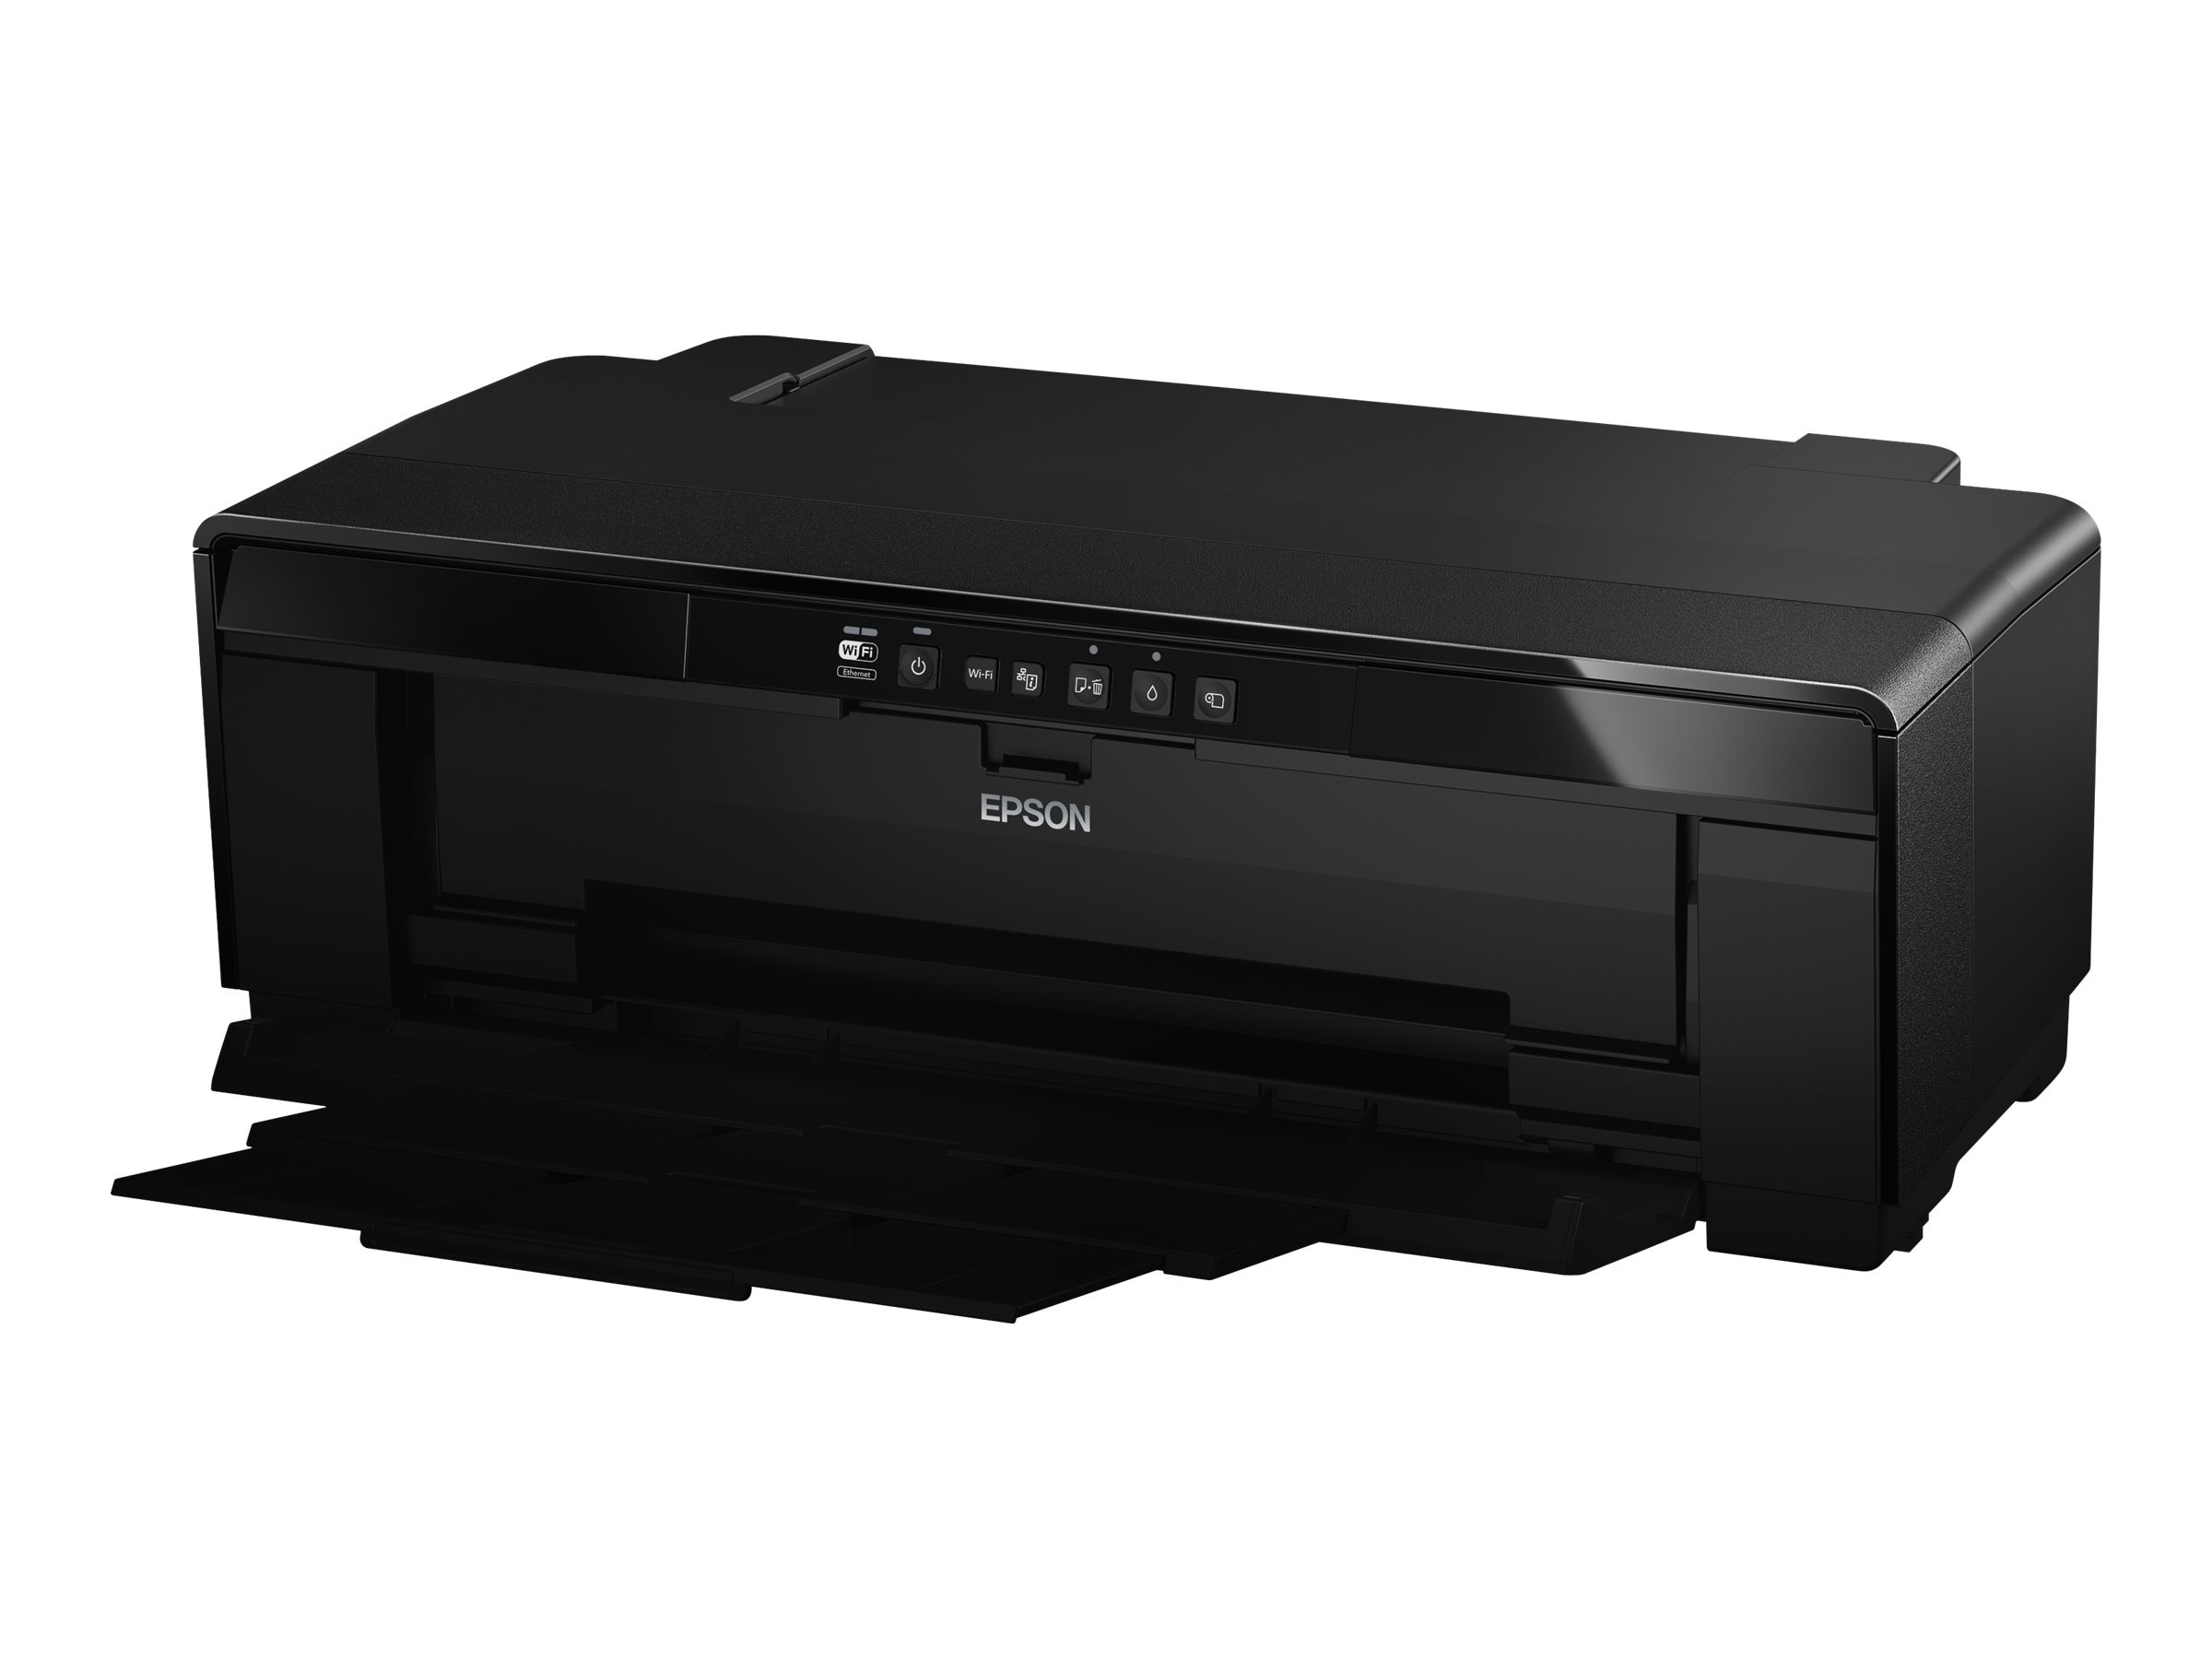 Epson SureColor P400 Wide Format Inkjet Printer, C11CE85201, 30915009, Printers - Ink-jet